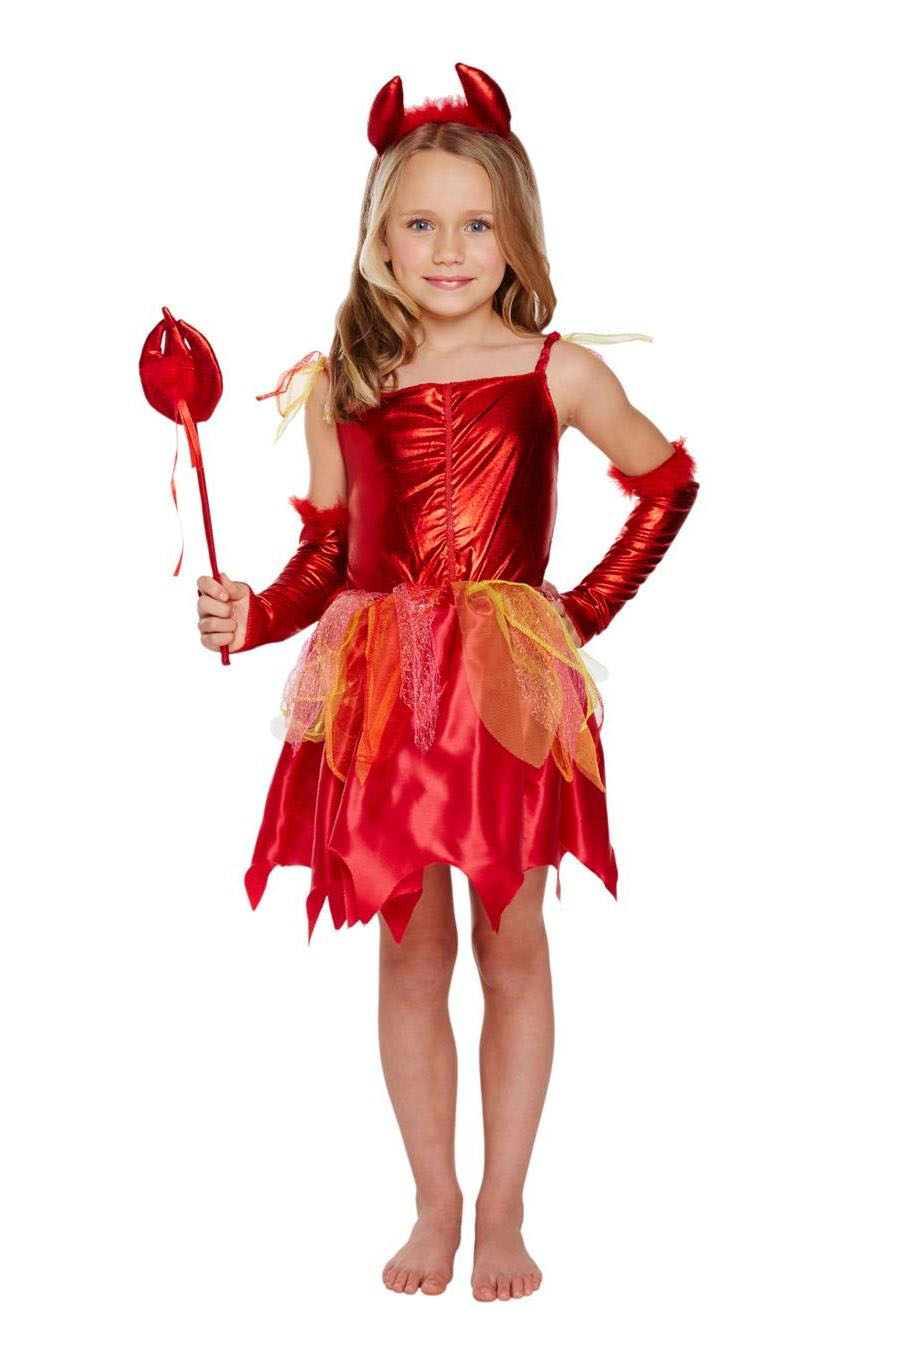 Consider, that Kids devil halloween costumes